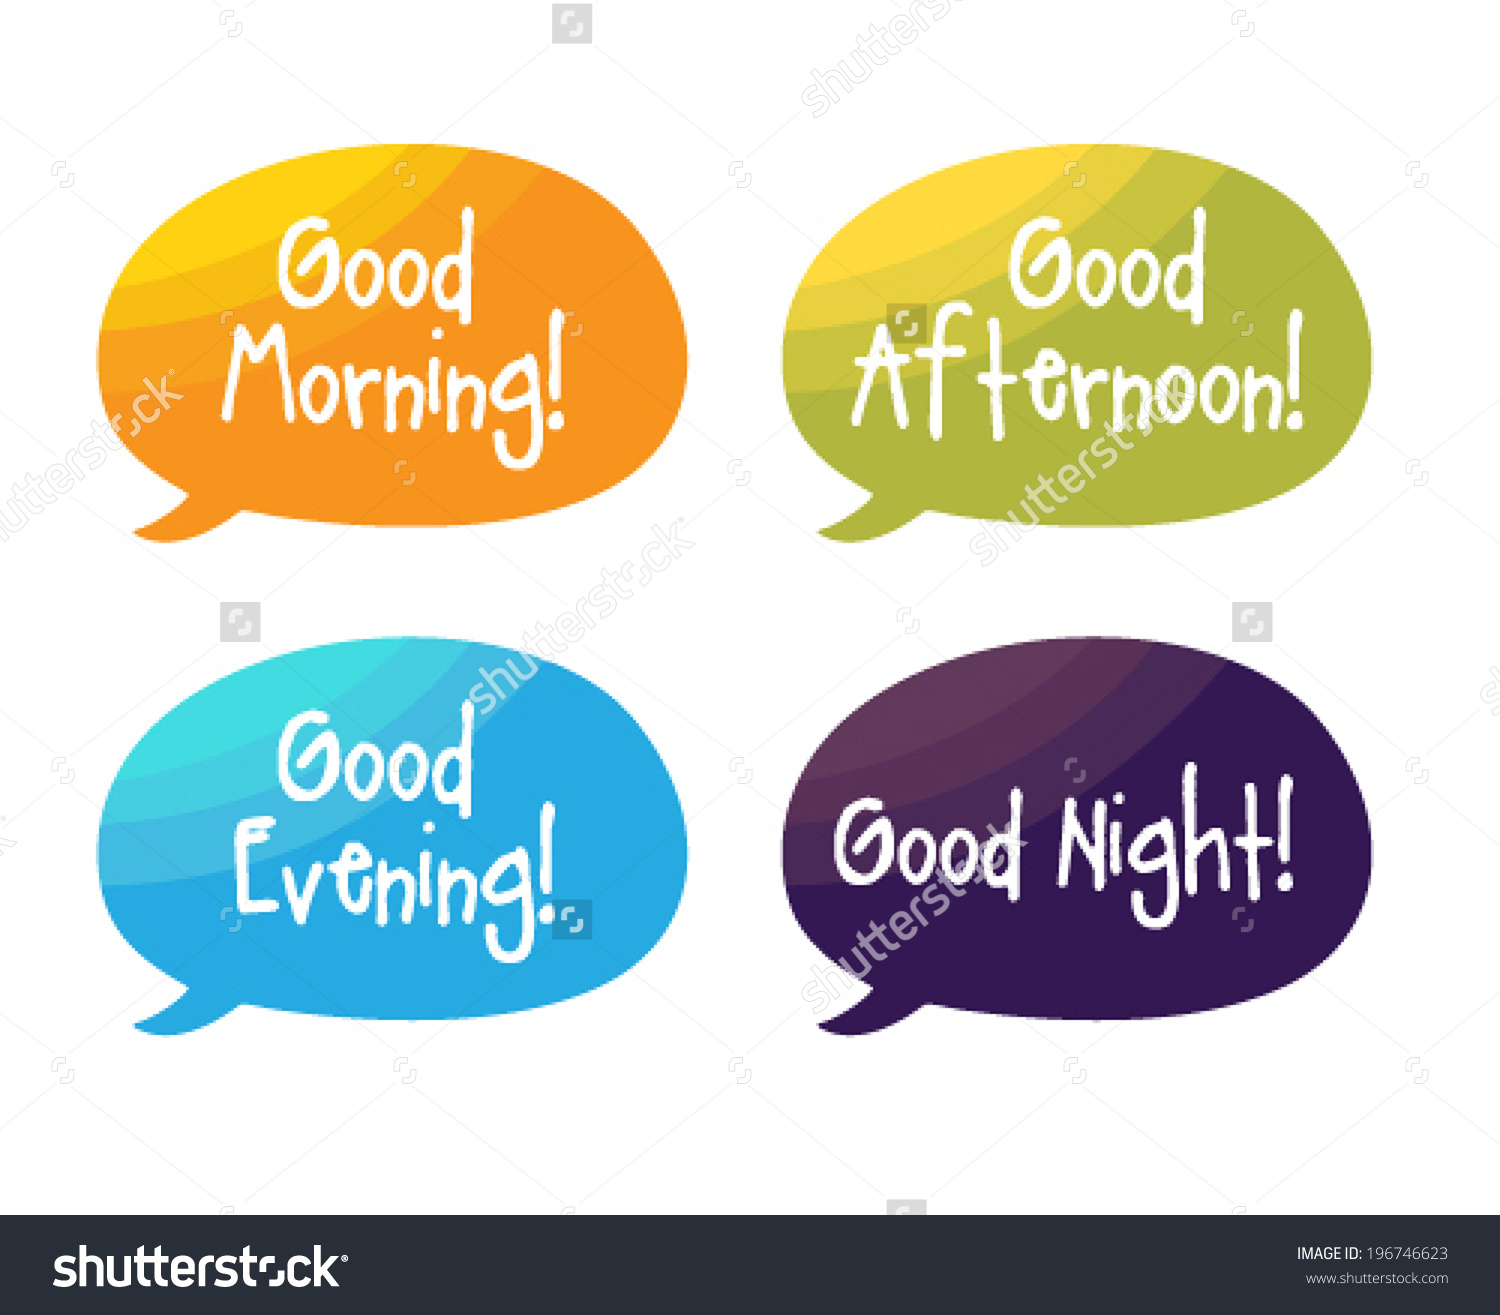 Good morning good afternoon good evening clipart picture transparent library Speech Bubbles Good Morning Good Afternoon Stock Vector 196746623 ... picture transparent library